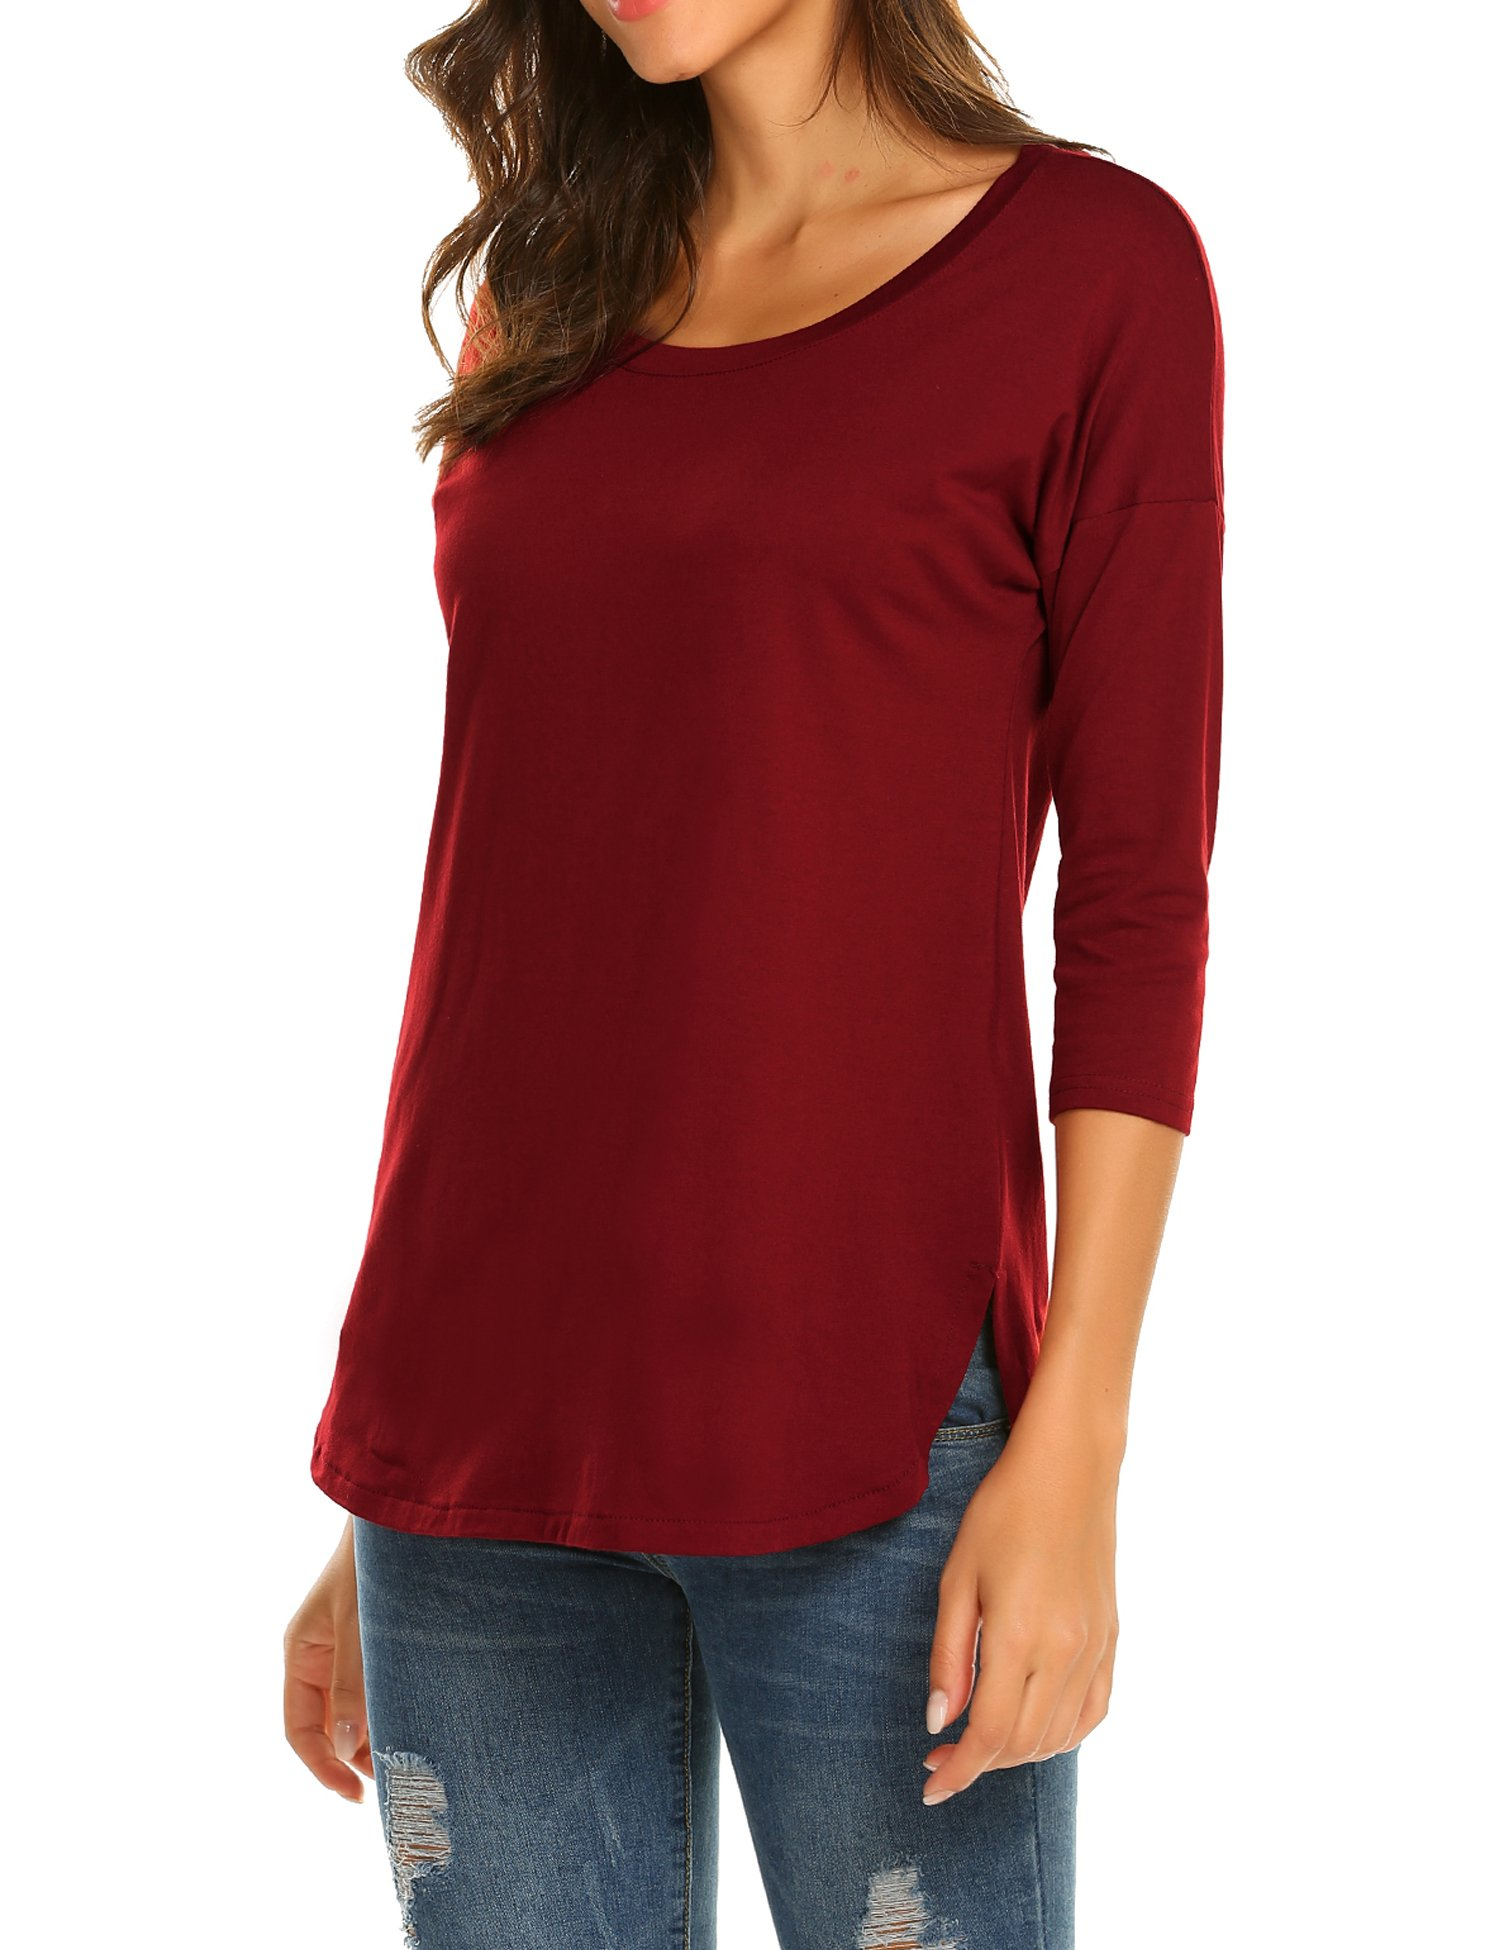 Sherosa Summer Casual Loose Side Split Tee Shirt Top Blouse Tunics for Women (L, Wine Red)